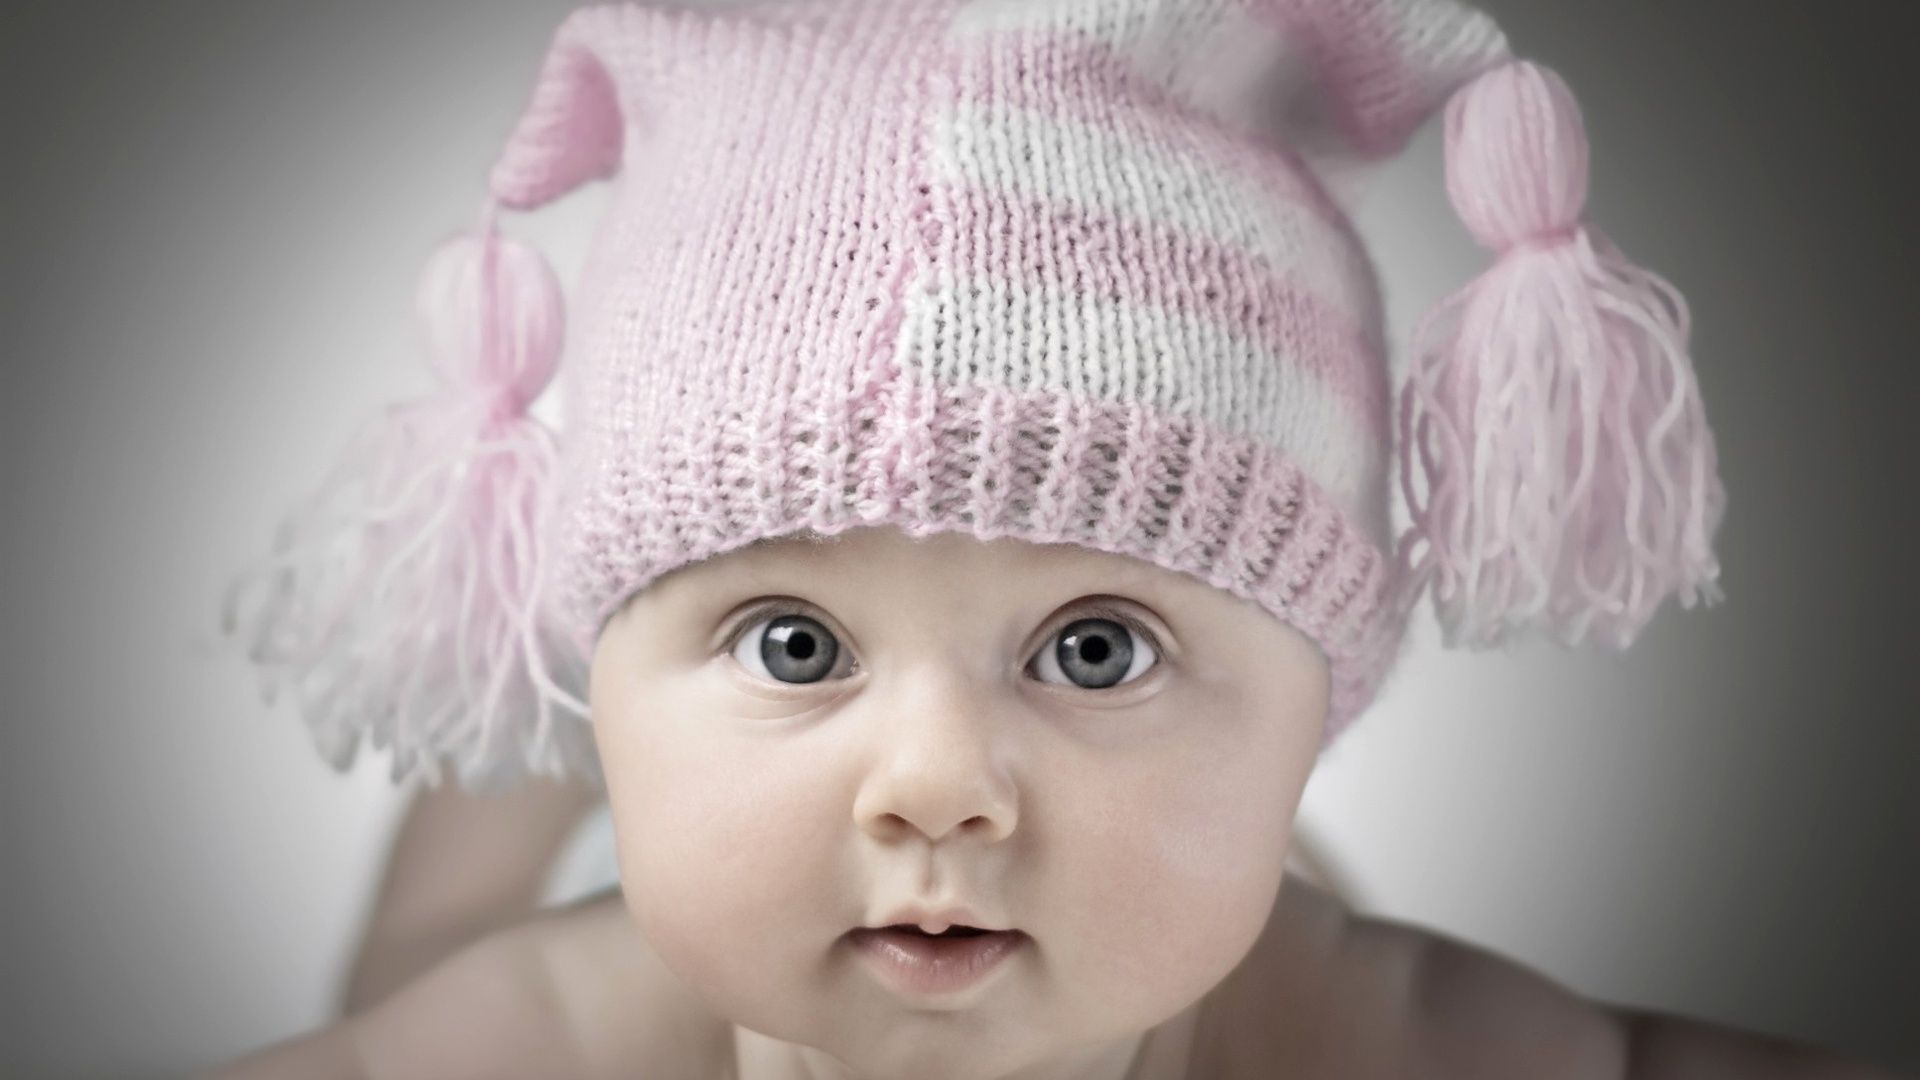 Biggest Collection Of HD Baby Wallpaper For Desktop And Mobile 1920x1080